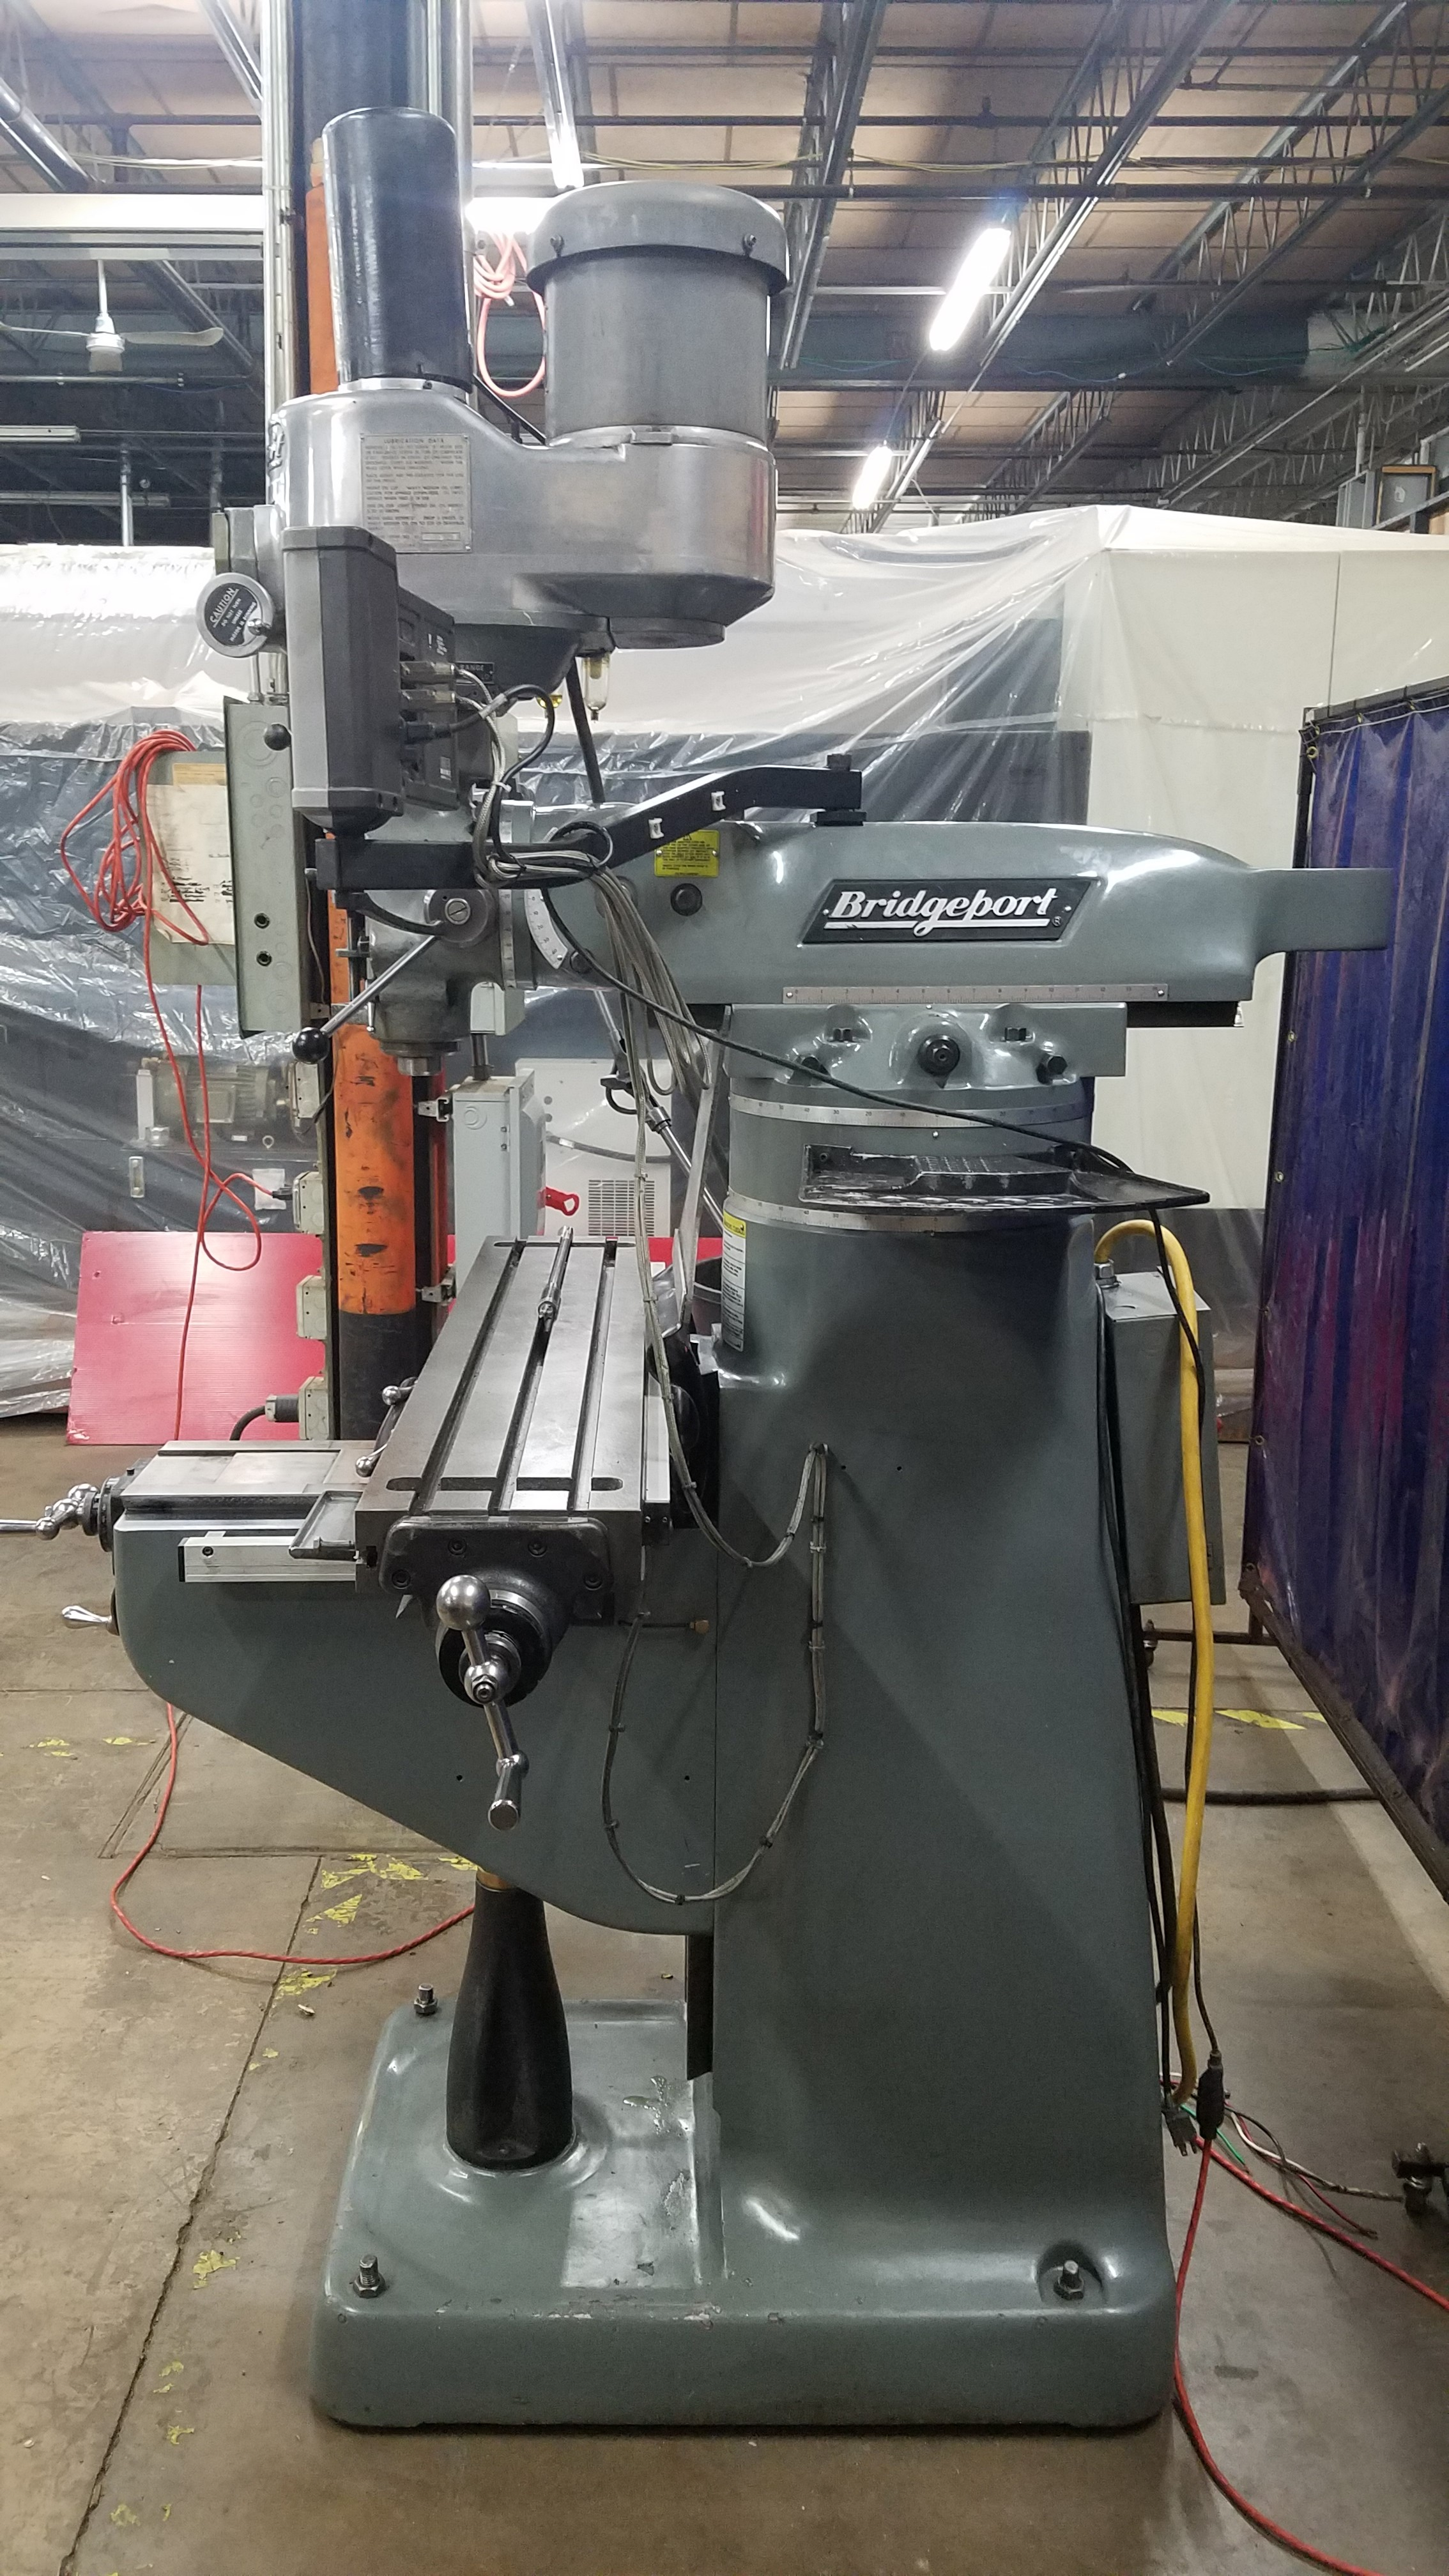 Excellent rebuilt Head, new Spindle bearings, New Servo corp. EVD Electronic variable Drive for Spindle, Well equipped with Power draw bar, Riser and Acu Rite Digital read outs, Currently we have 6 Mills like this in stock to meet any budget